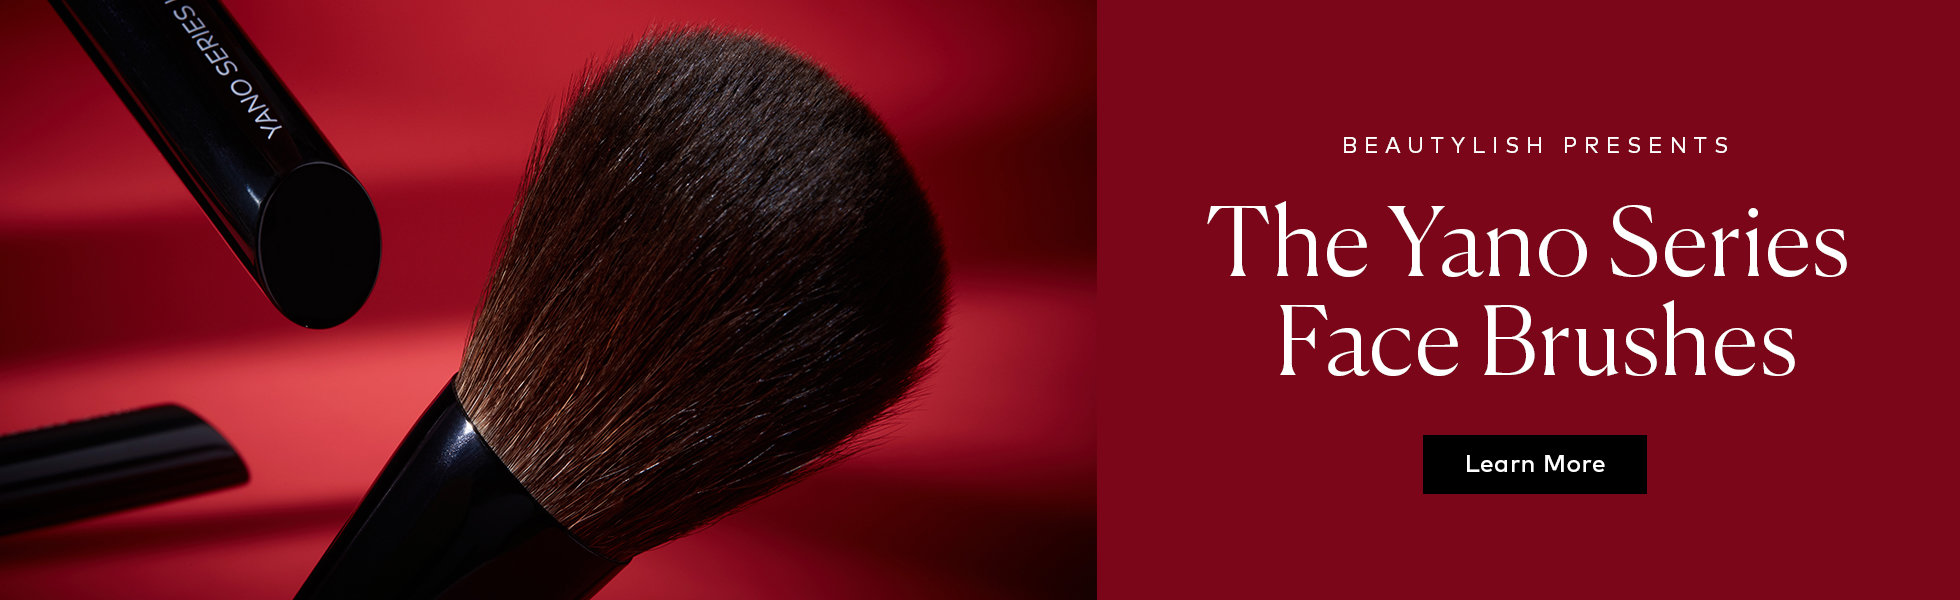 Beautylish Presents The Yano Series Face Brushes –?learn more.